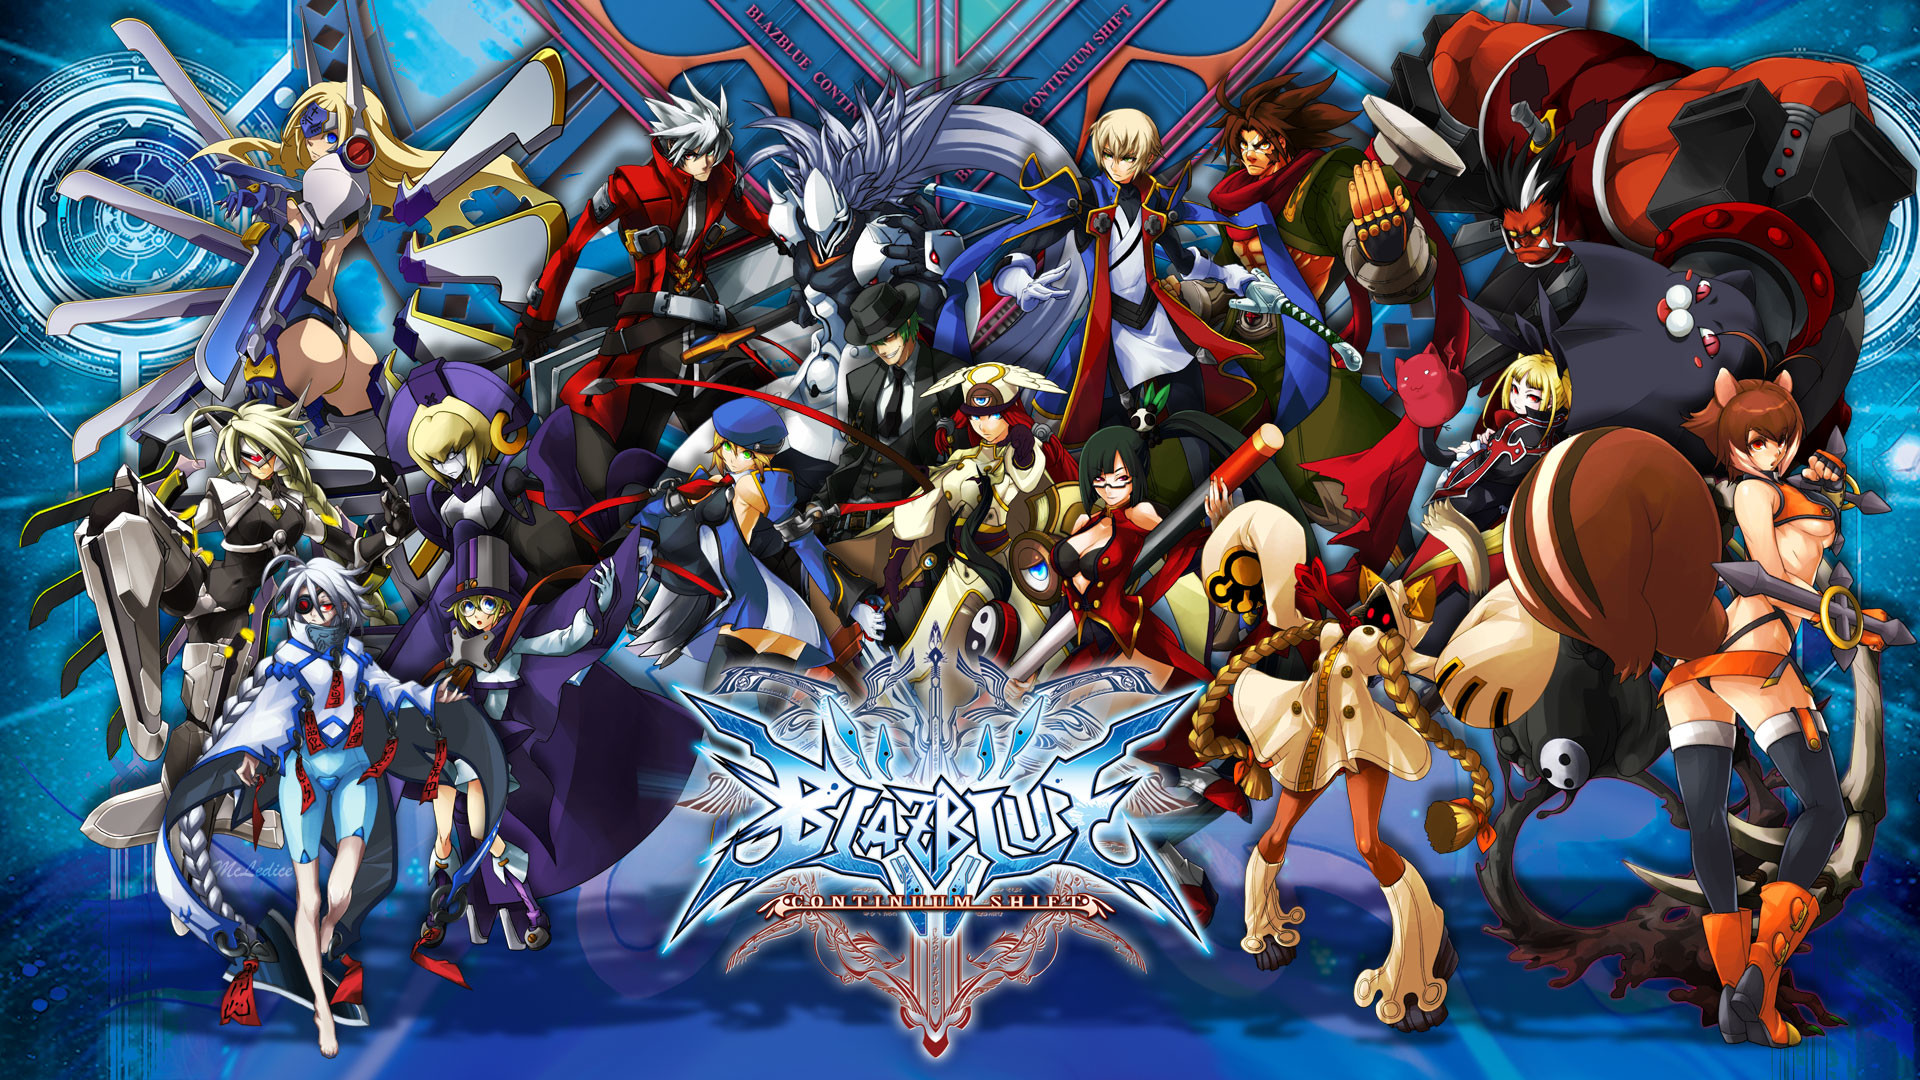 2 BlazBlue: Continuum Shift II HD Wallpapers   Backgrounds – Wallpaper Abyss